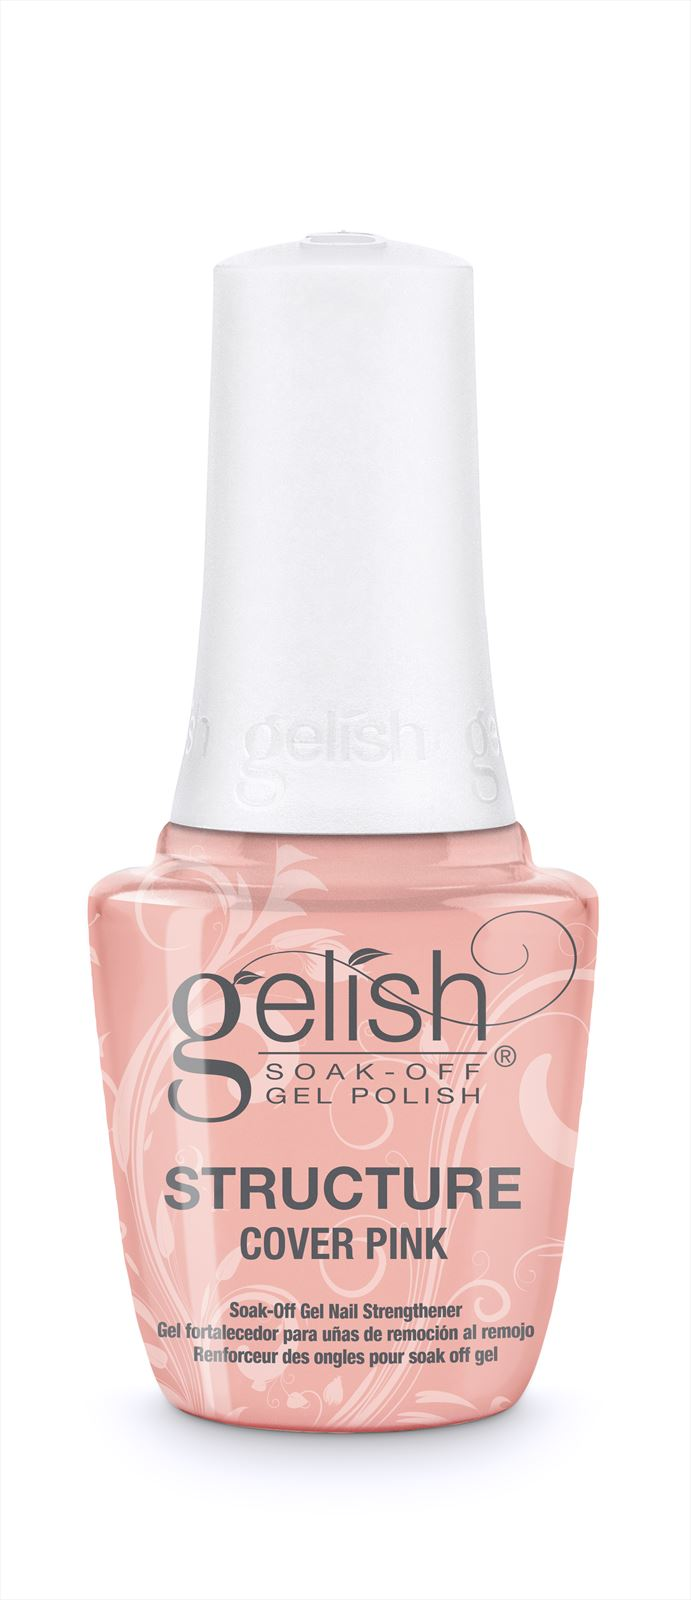 Afbeelding van Gelish Cover Pink Brush on Structure